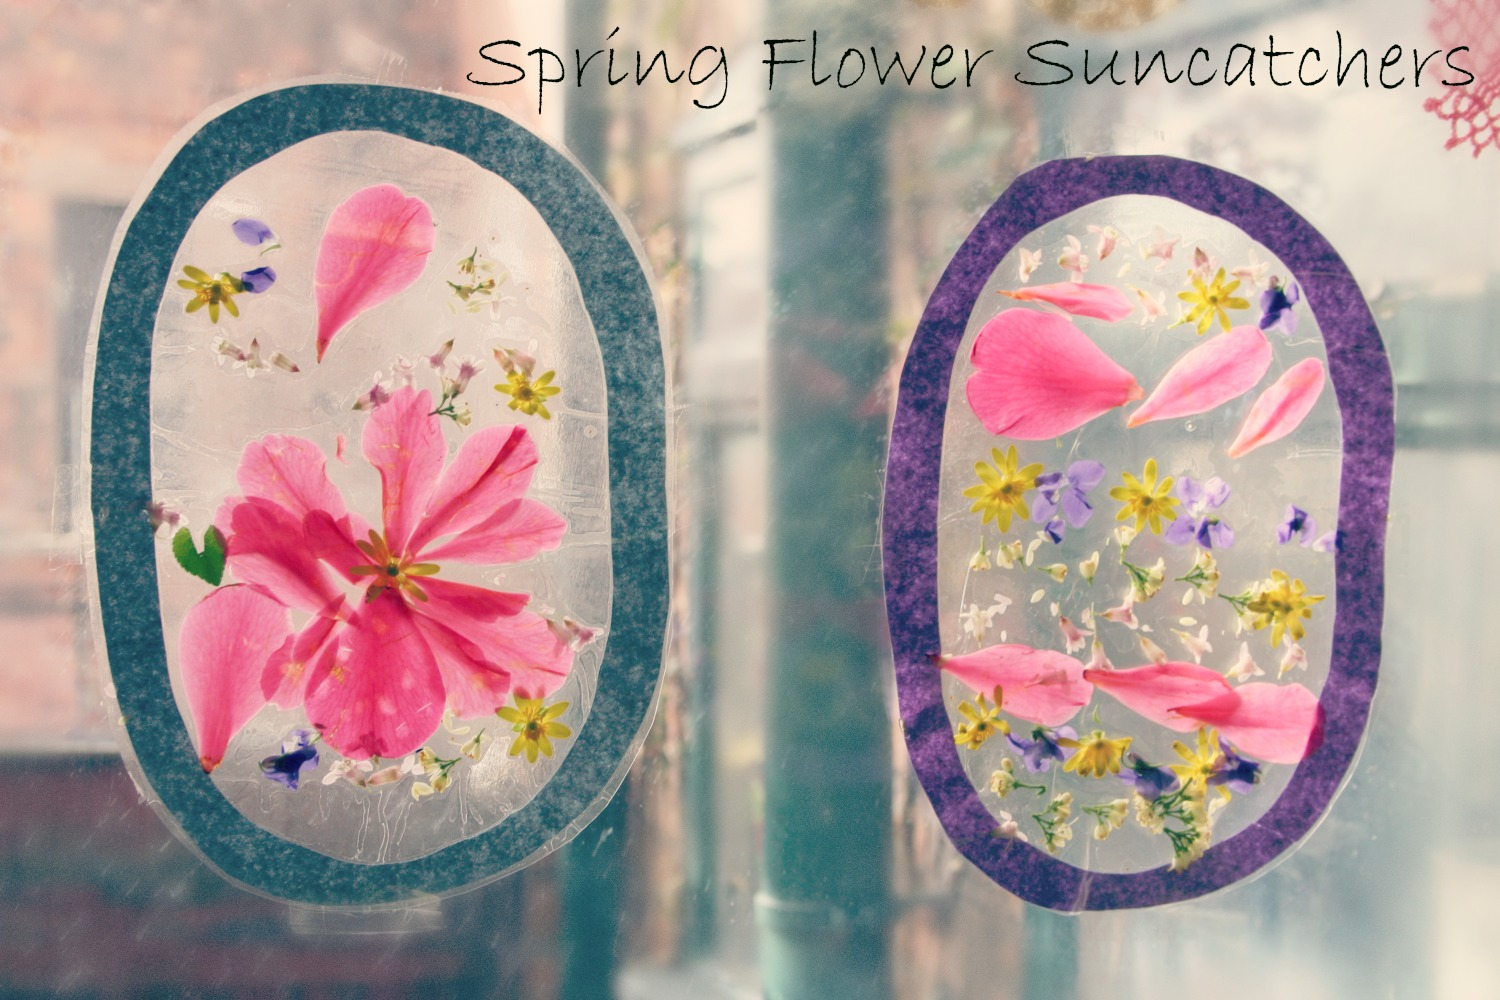 Spring flower sun catchers - This Enchanted Pixie //